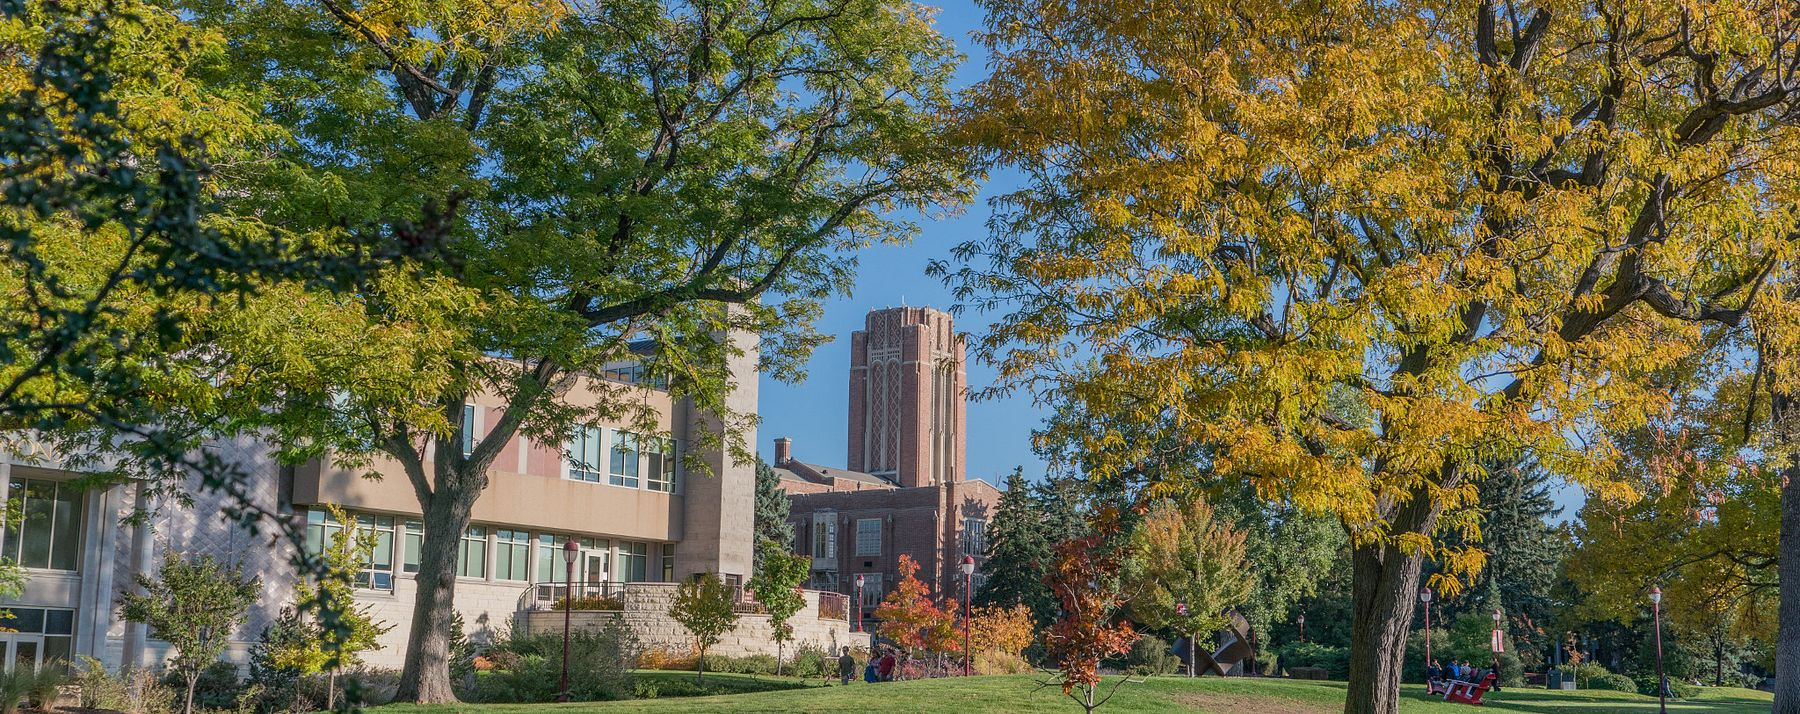 Scenic picture of campus